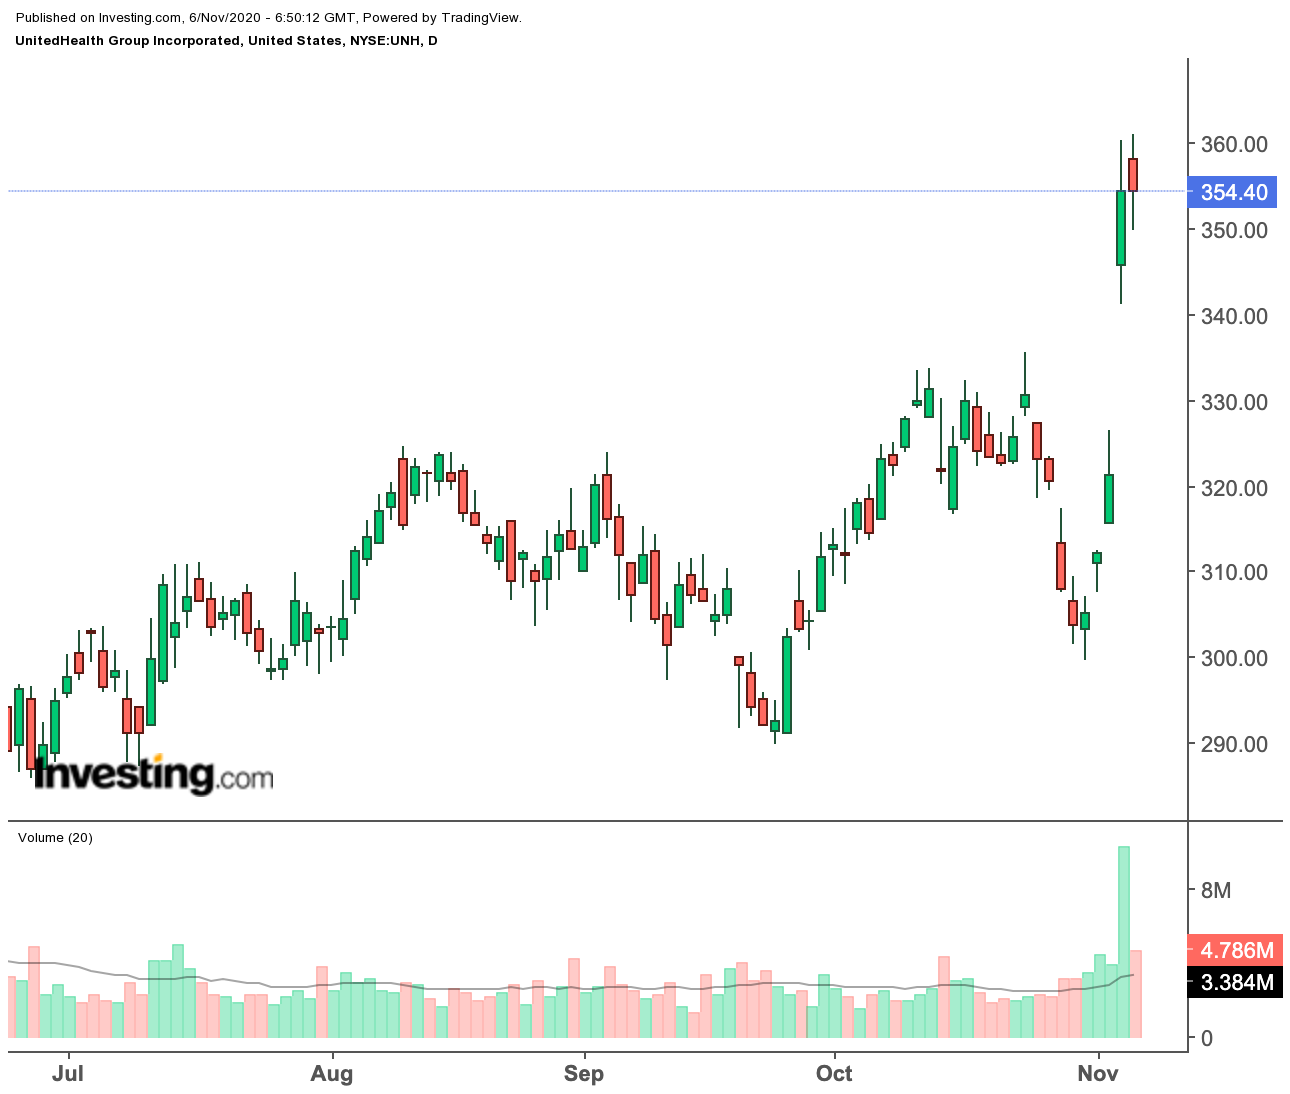 United Health Daily